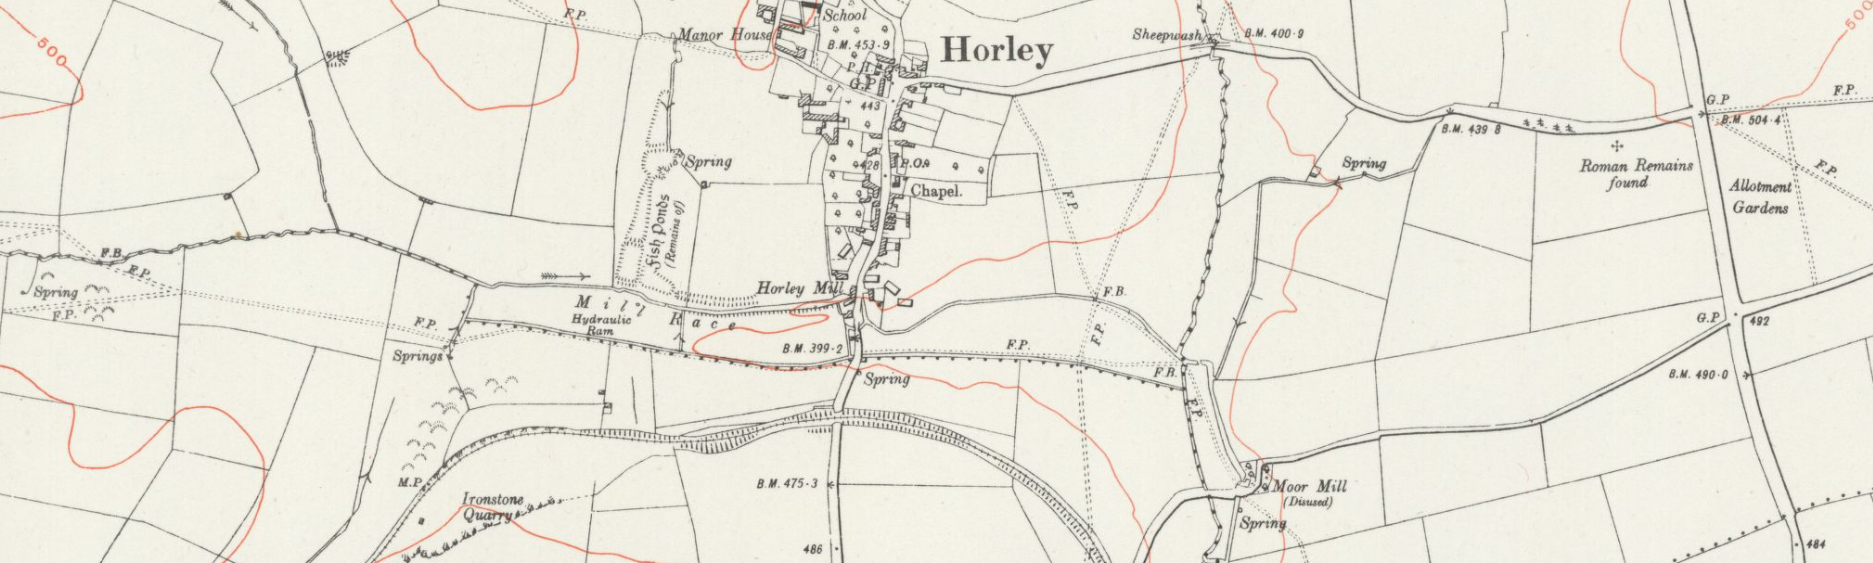 Map of Horley, including Oxfordshire Ironstone Railway